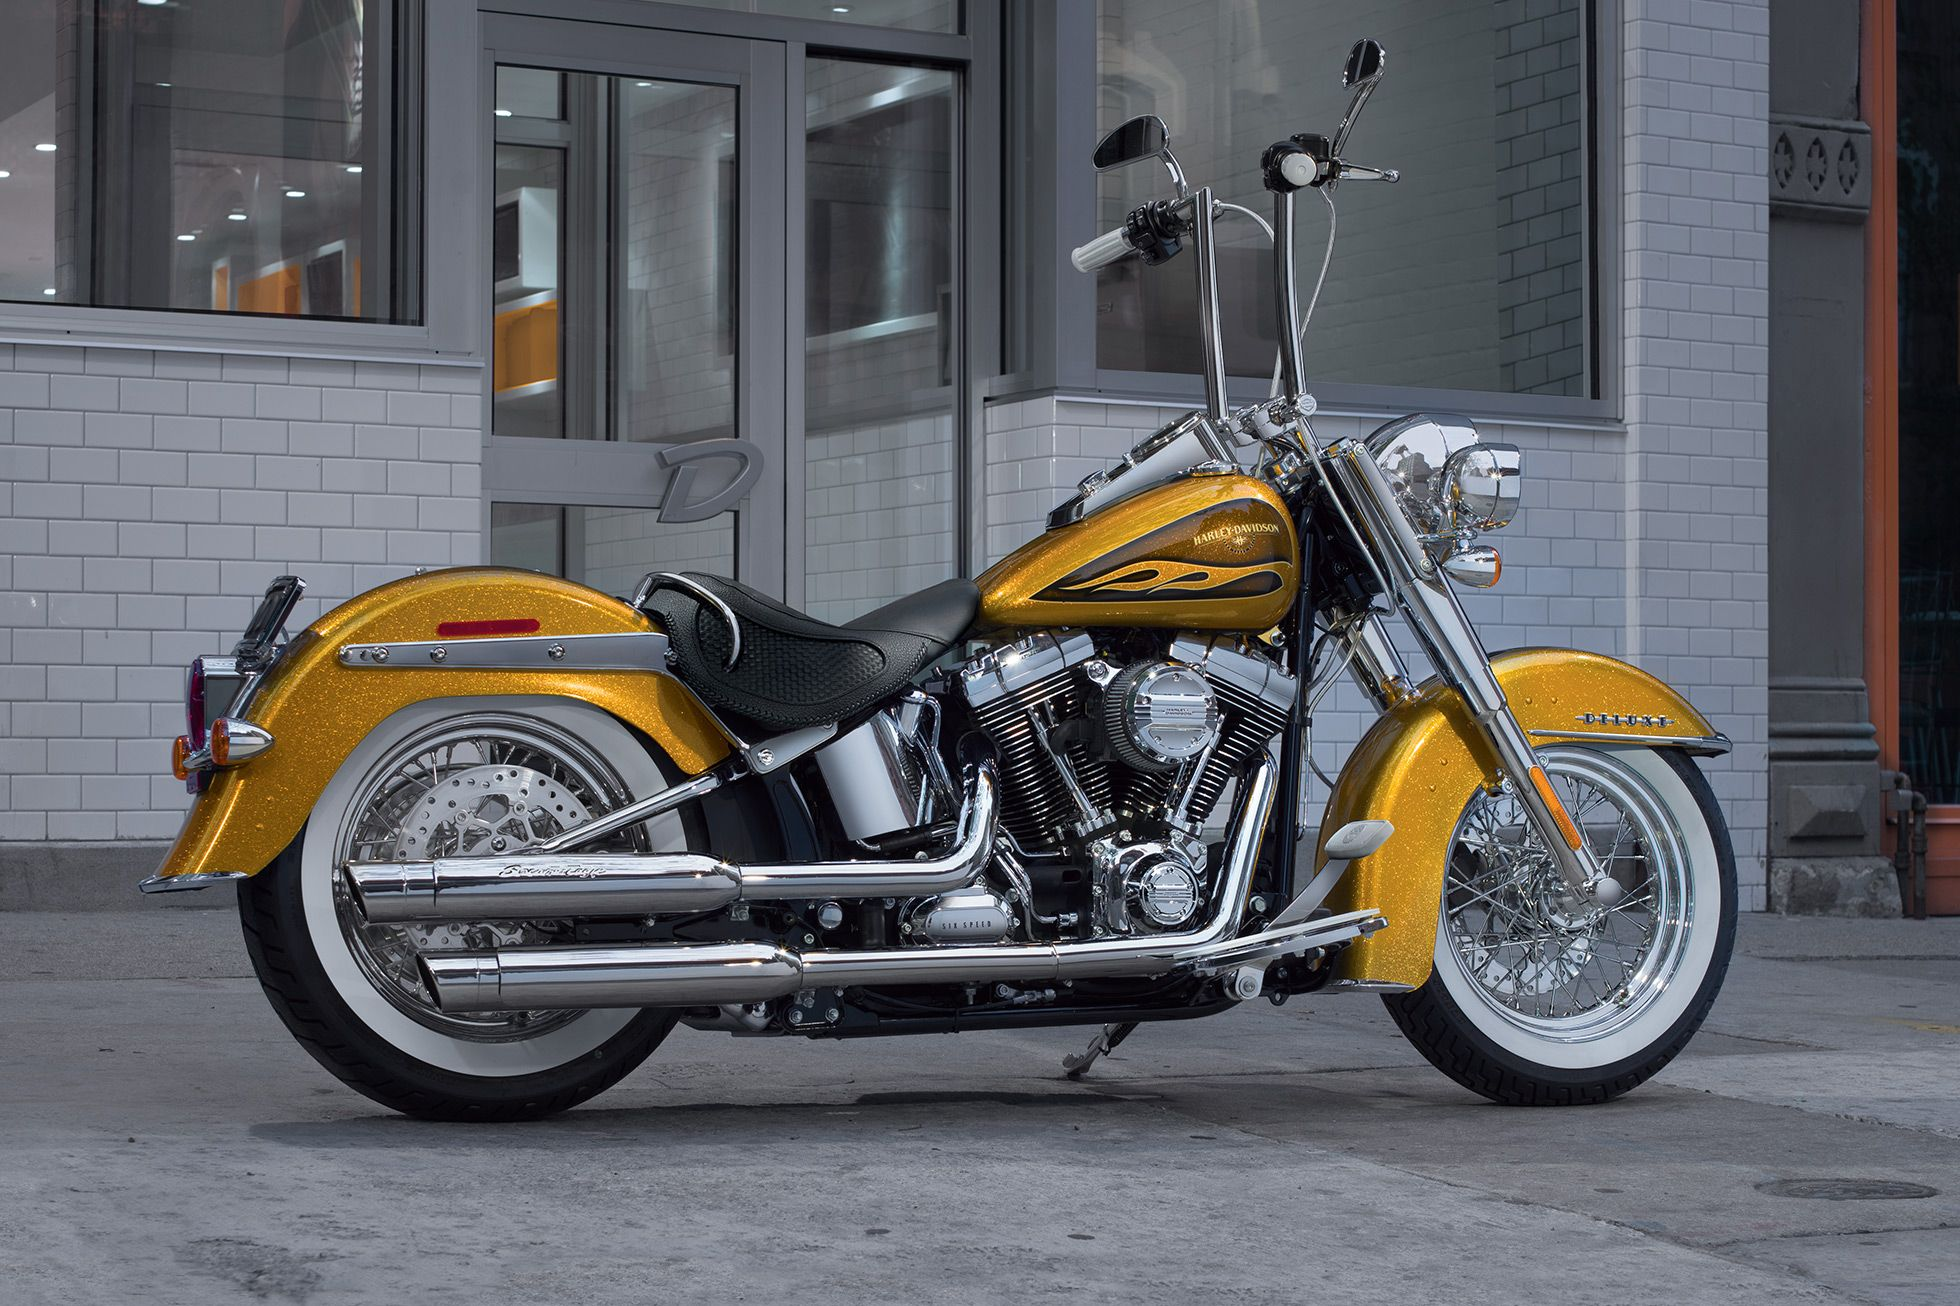 2016 Softail Deluxe modified | Harley Davidson | Pinterest ...